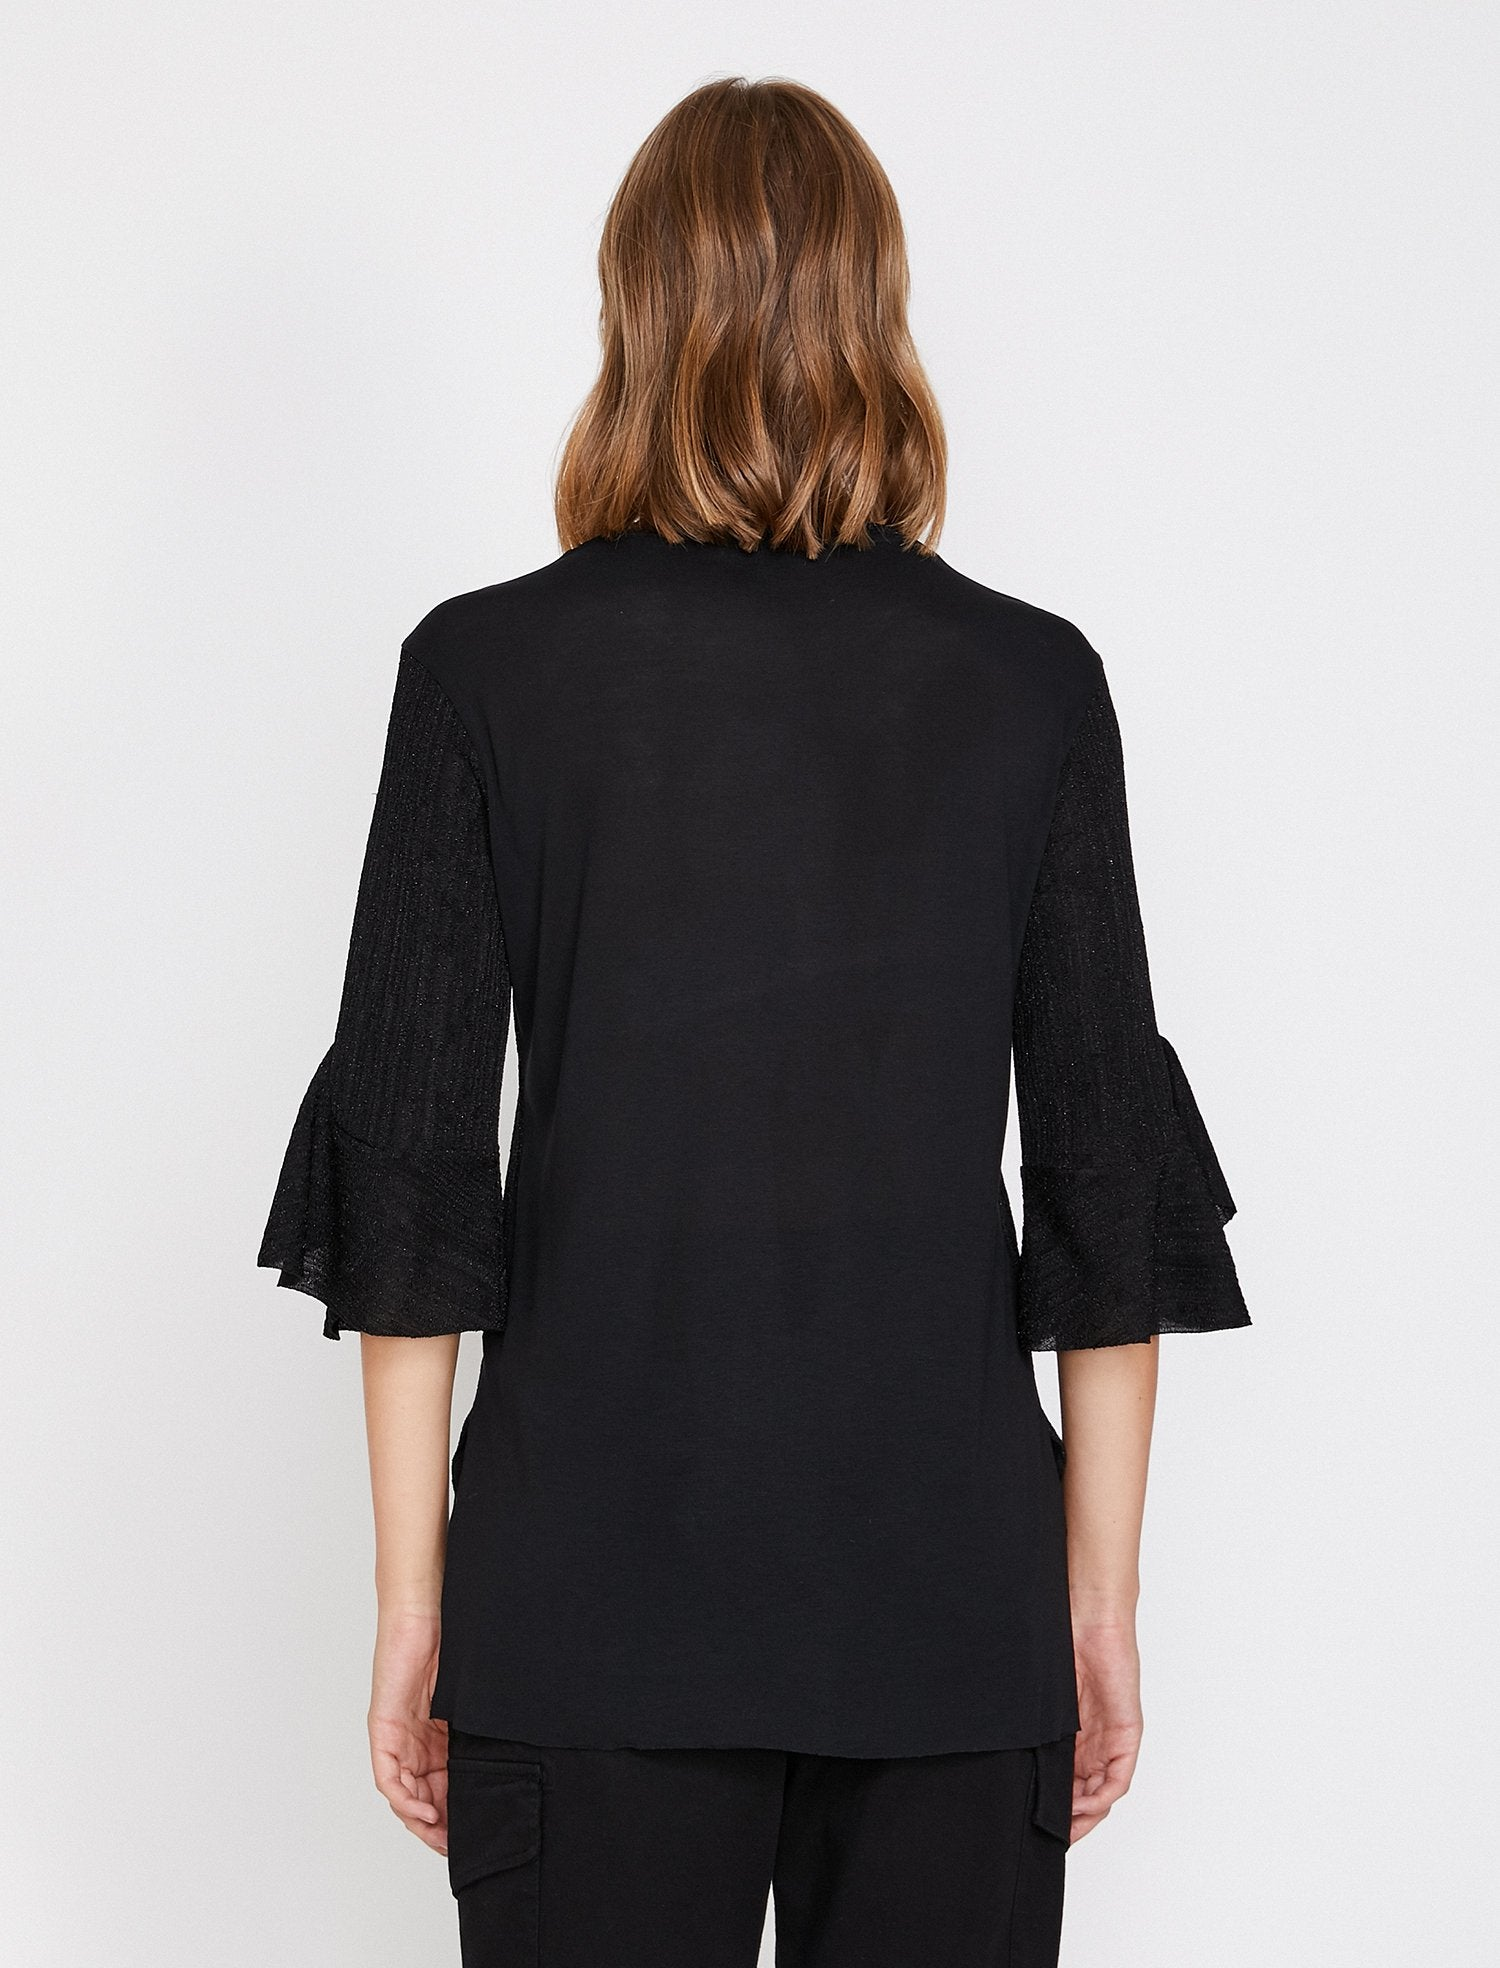 Shimmered Ruffle Sleeve Blouse in Black